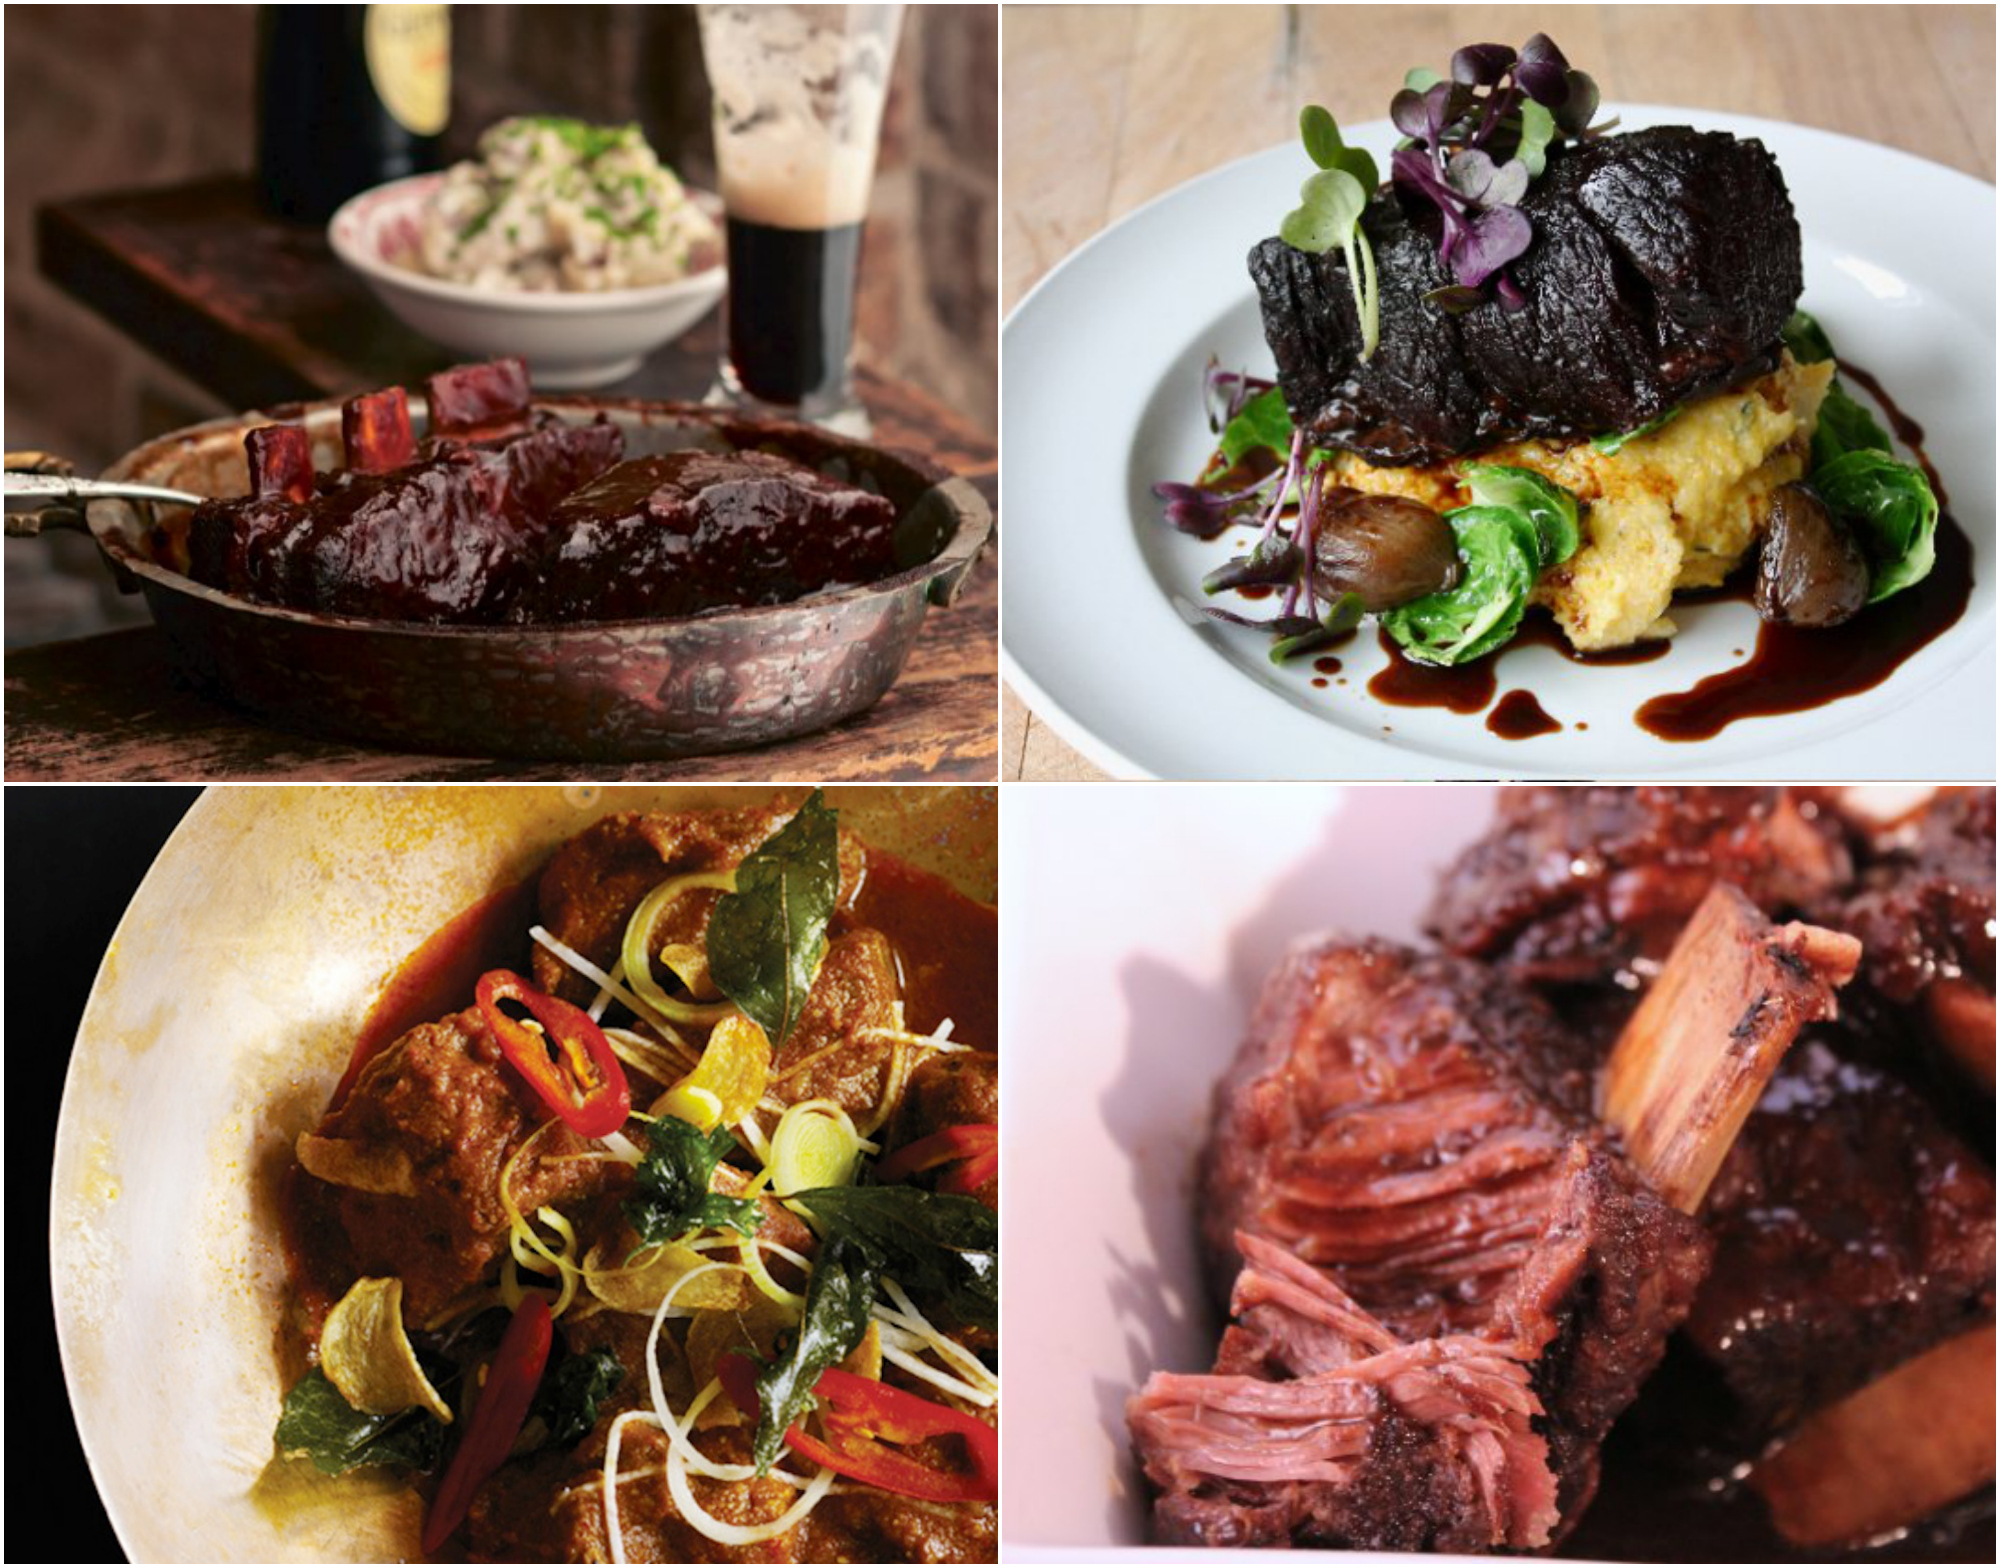 5 Ideas For Dinner: Short Ribs